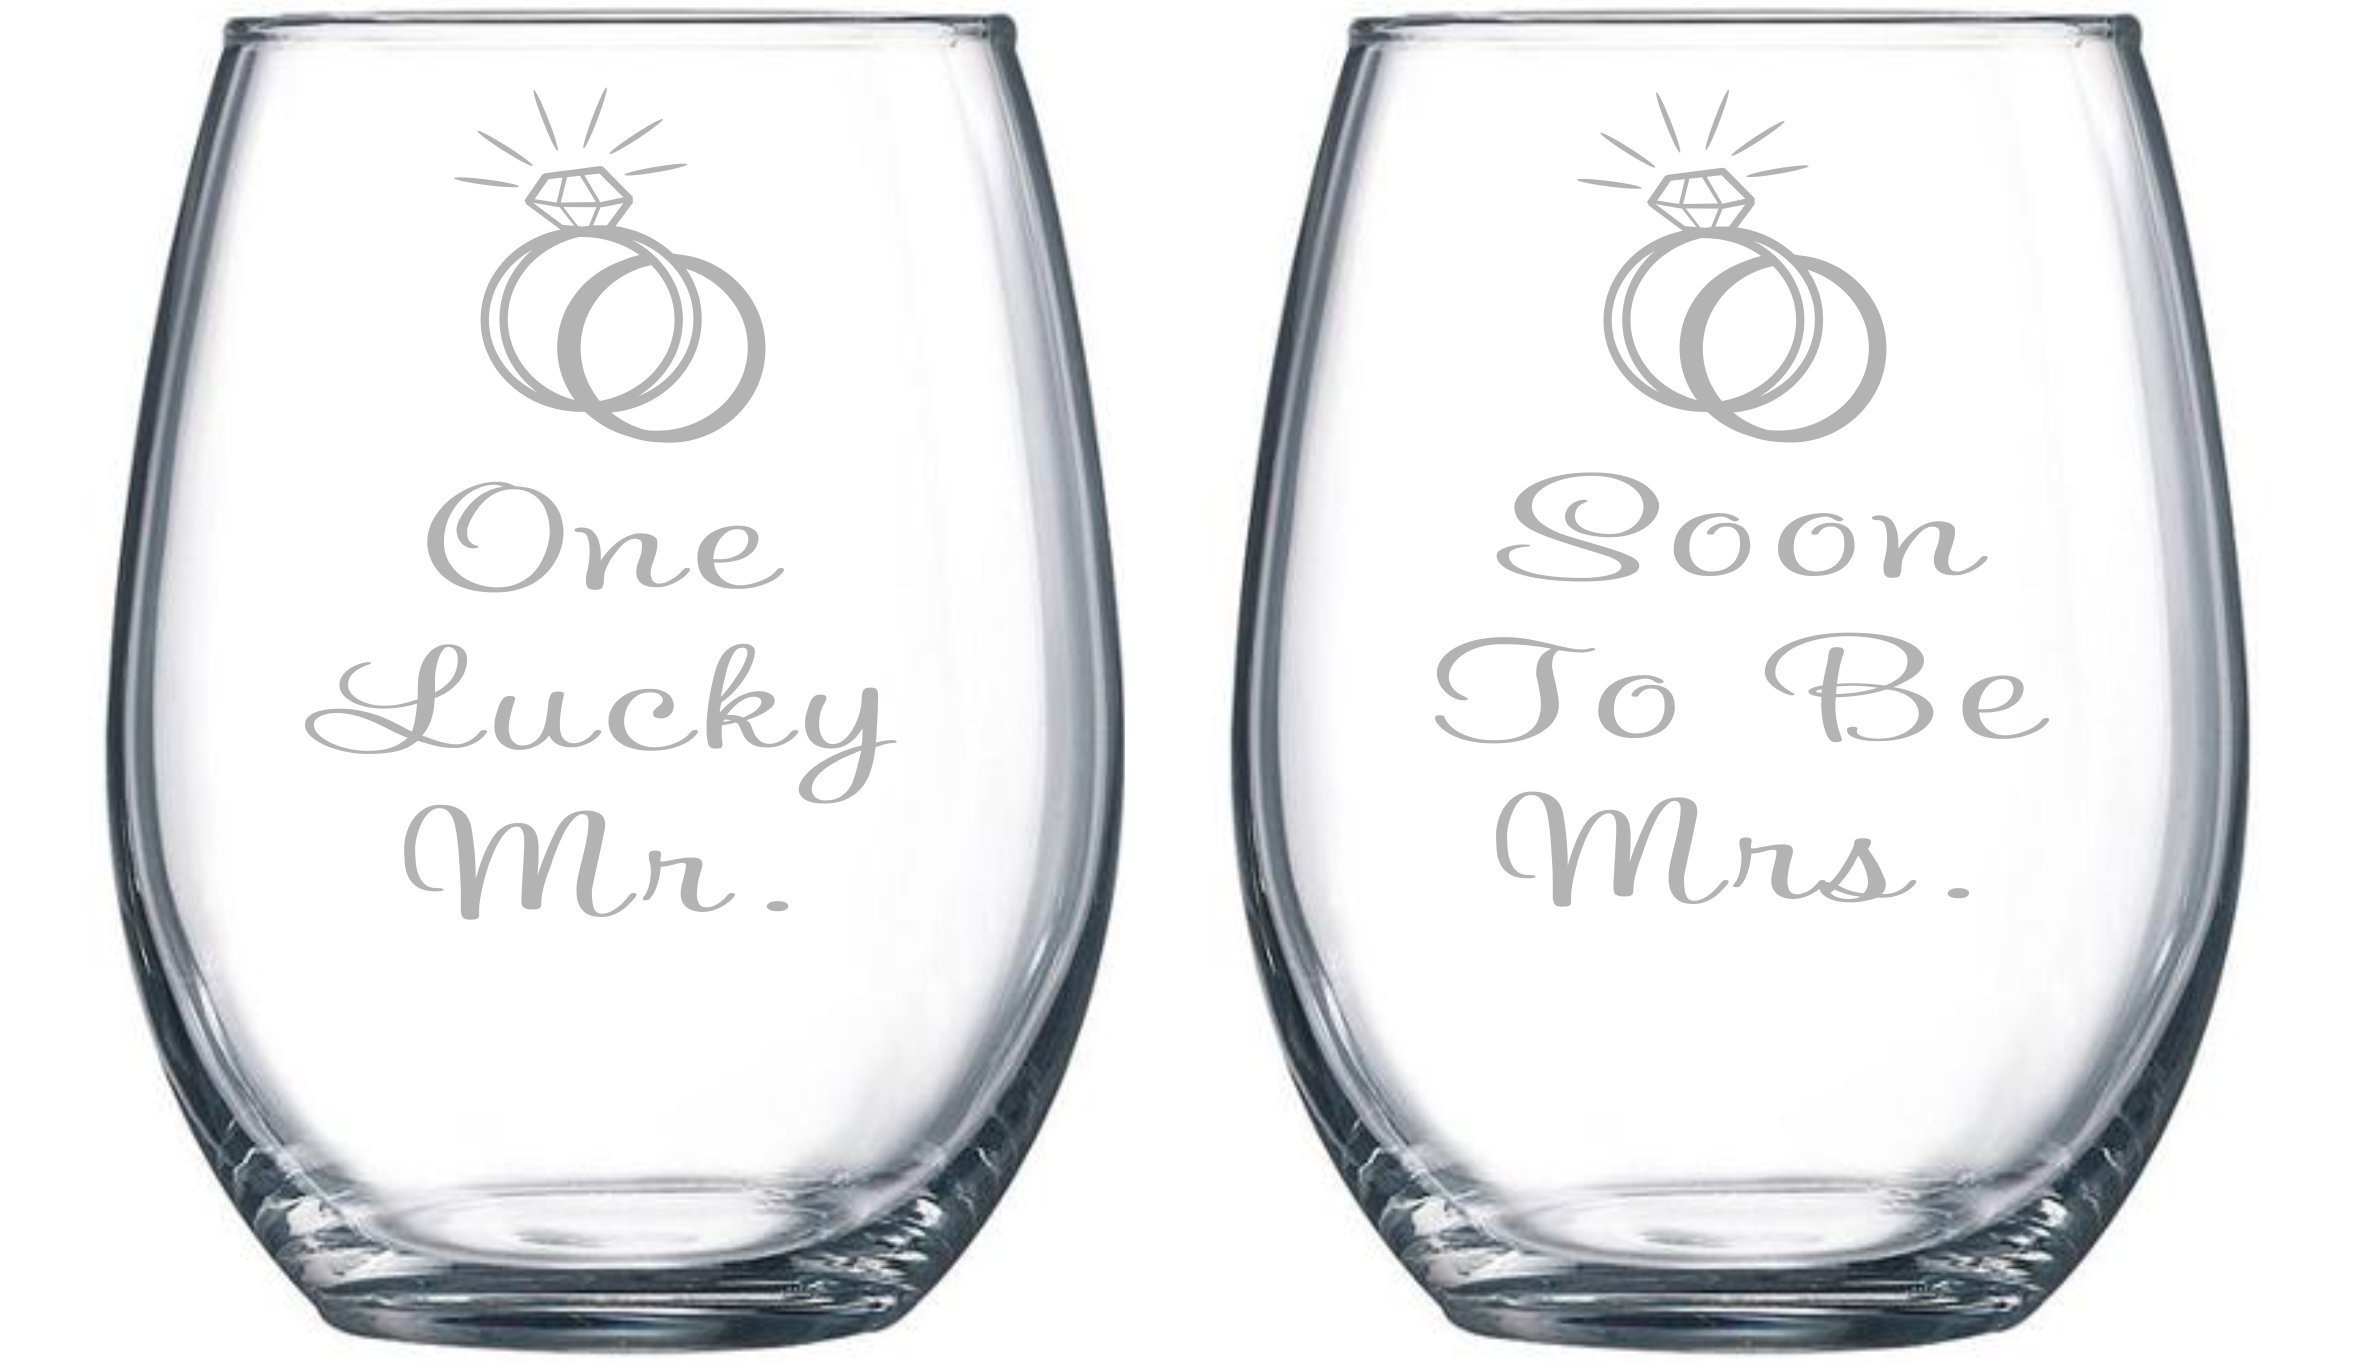 One Lucky Mr. and Soon To Be Mrs. Etched 15 oz. Stemless Wine Glasses Set - Engagment Gift Set by C&M Personal Gifts